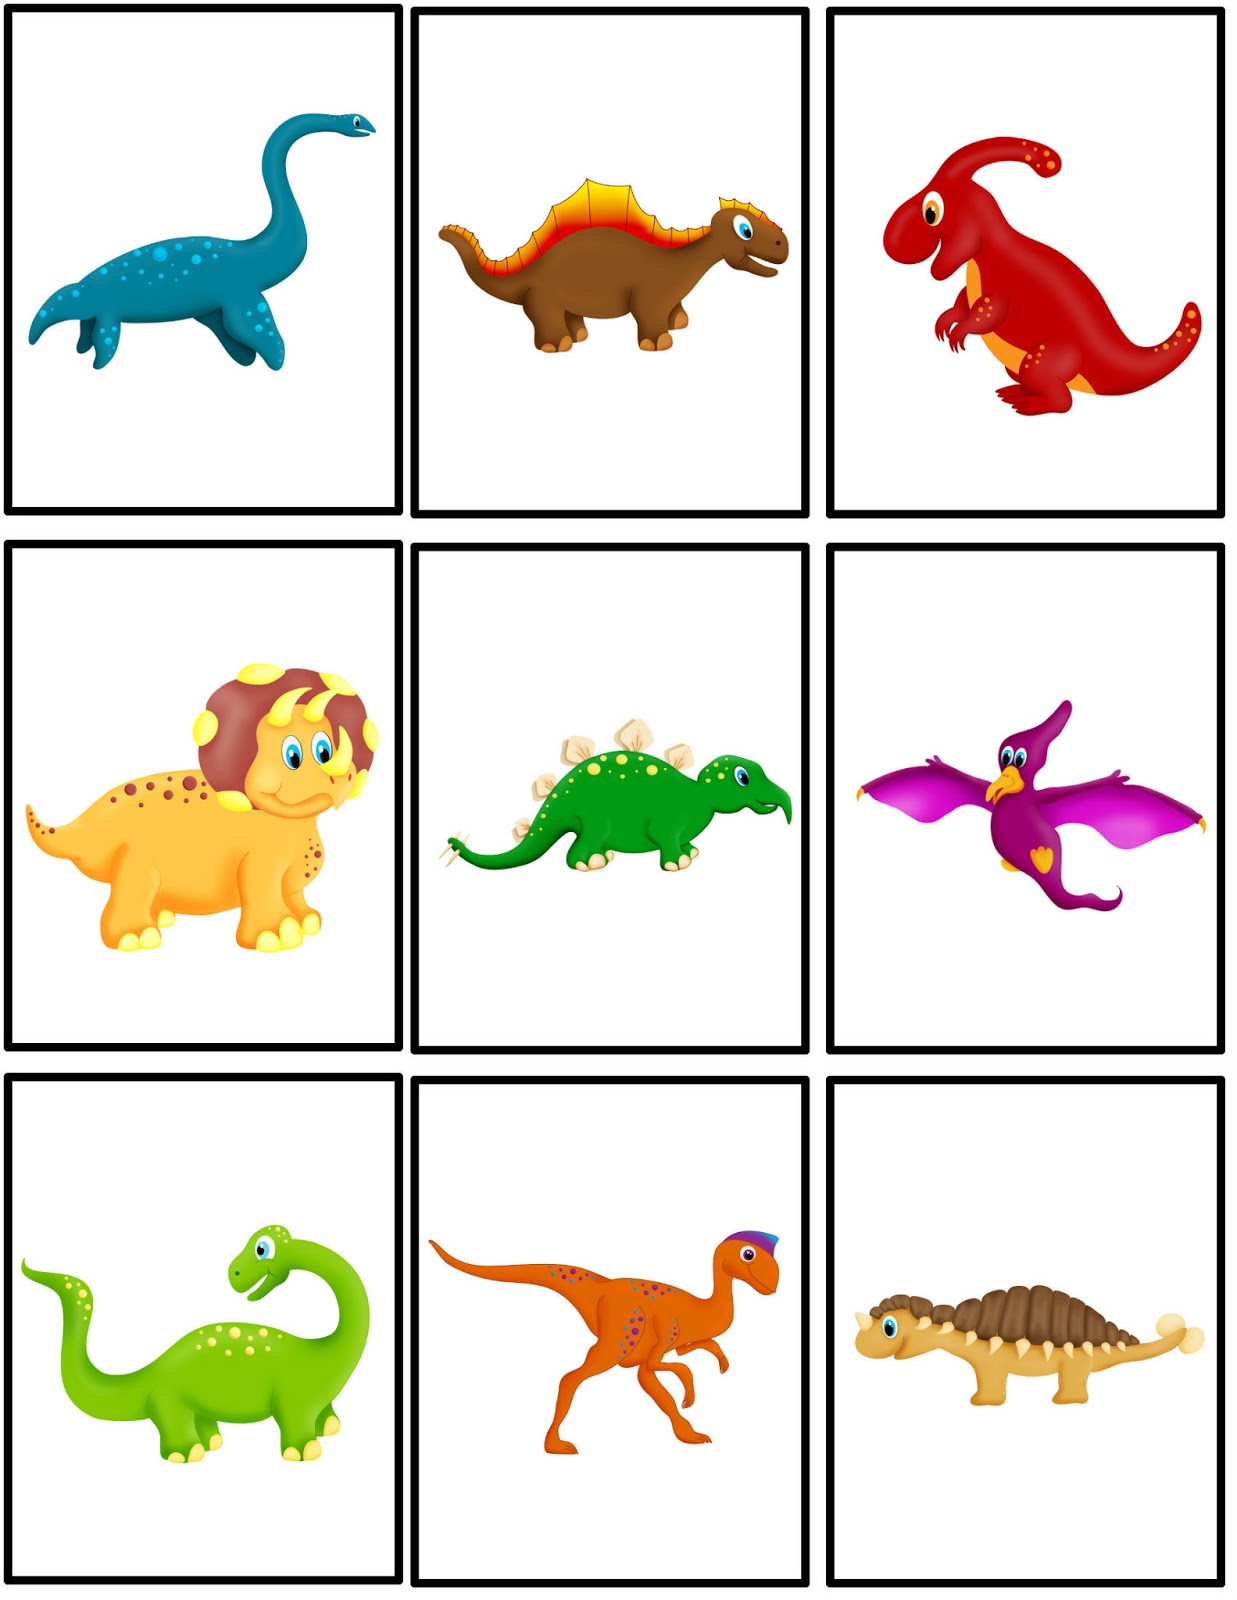 4 Images of Dino Printable Concentration Game